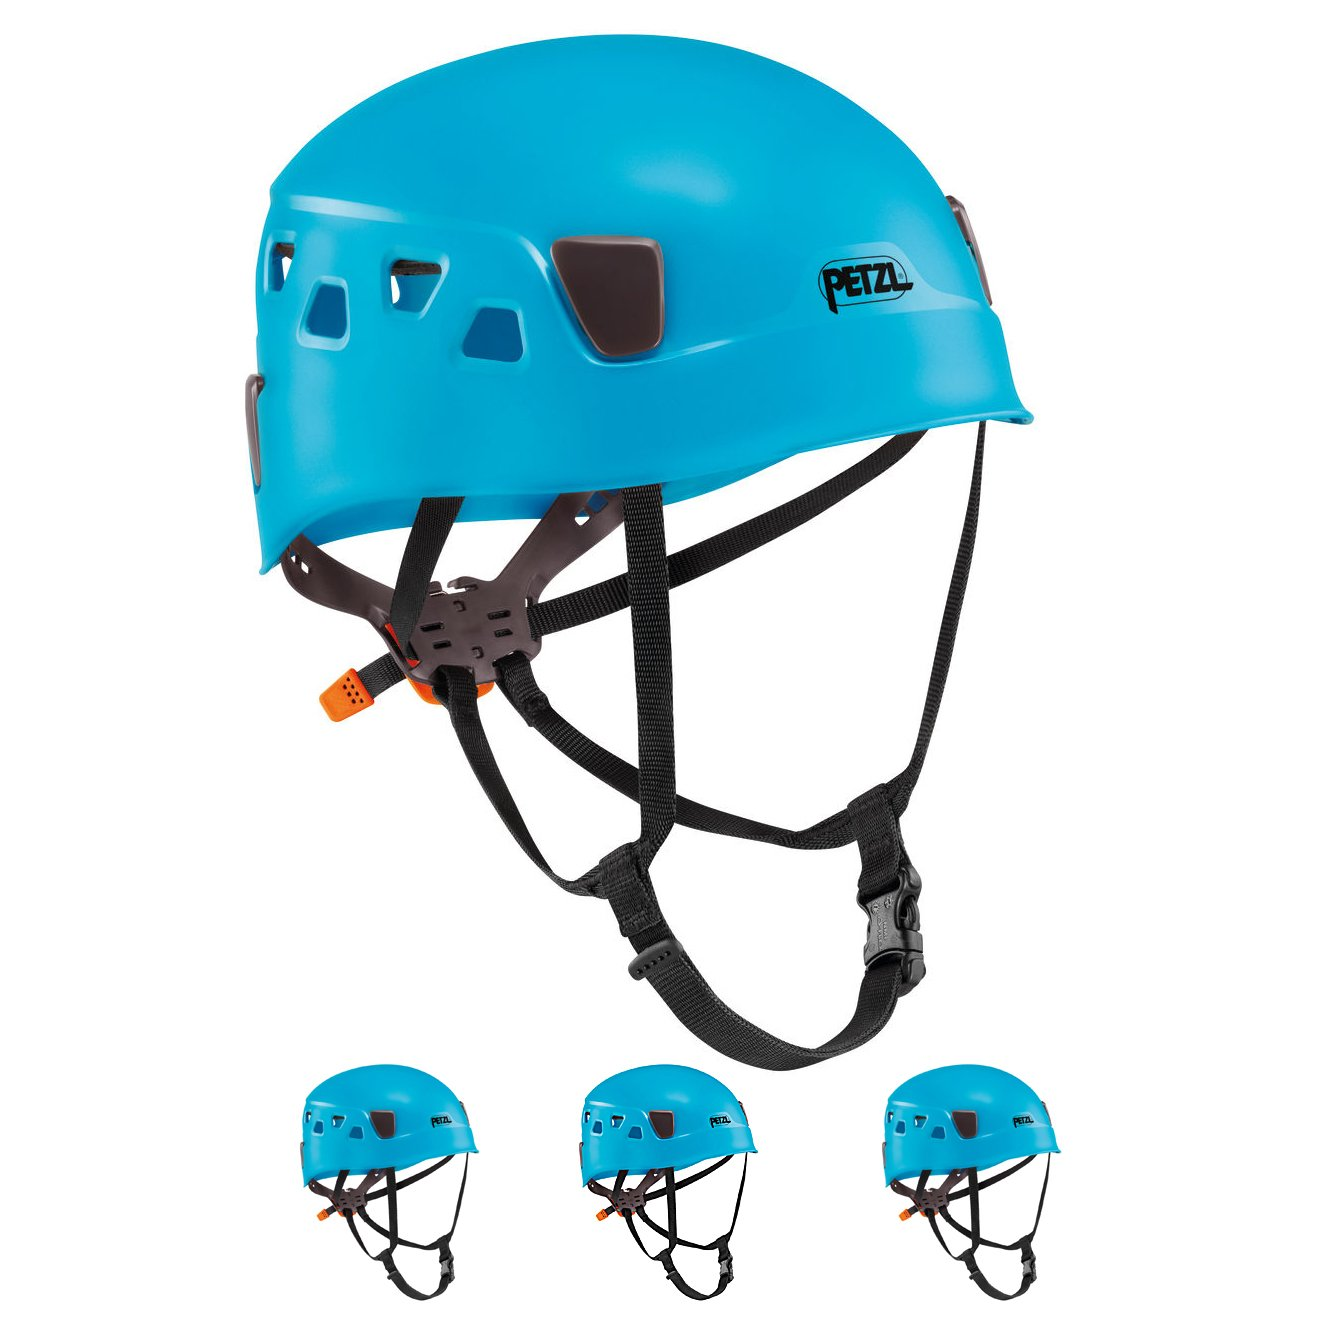 Petzl Panga Blue Climbing Helmet for Group and Club Use 4 Pack by Petzl